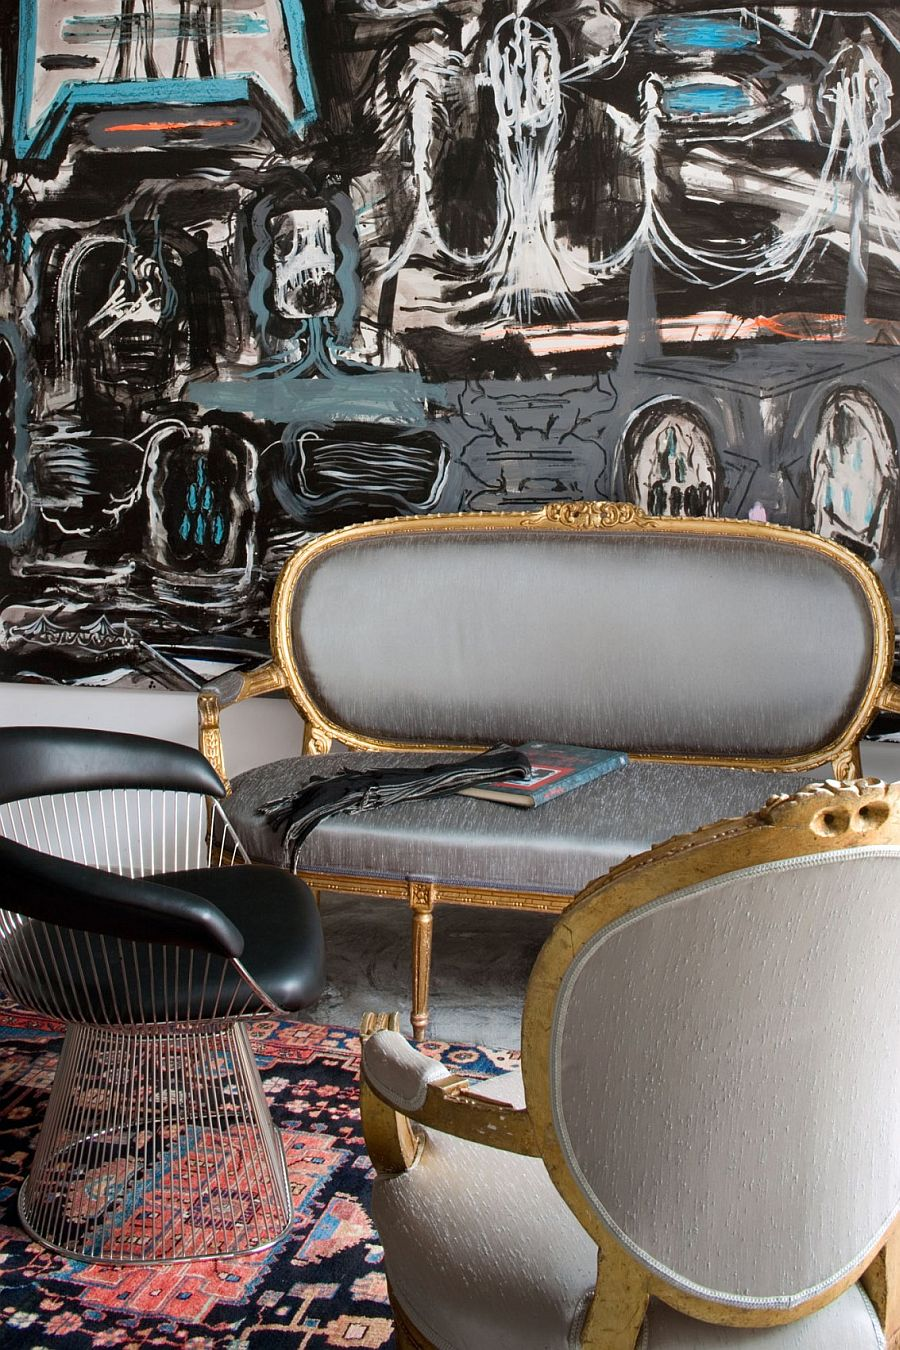 Modern art combined with traditional decor to shape an eclectic interior